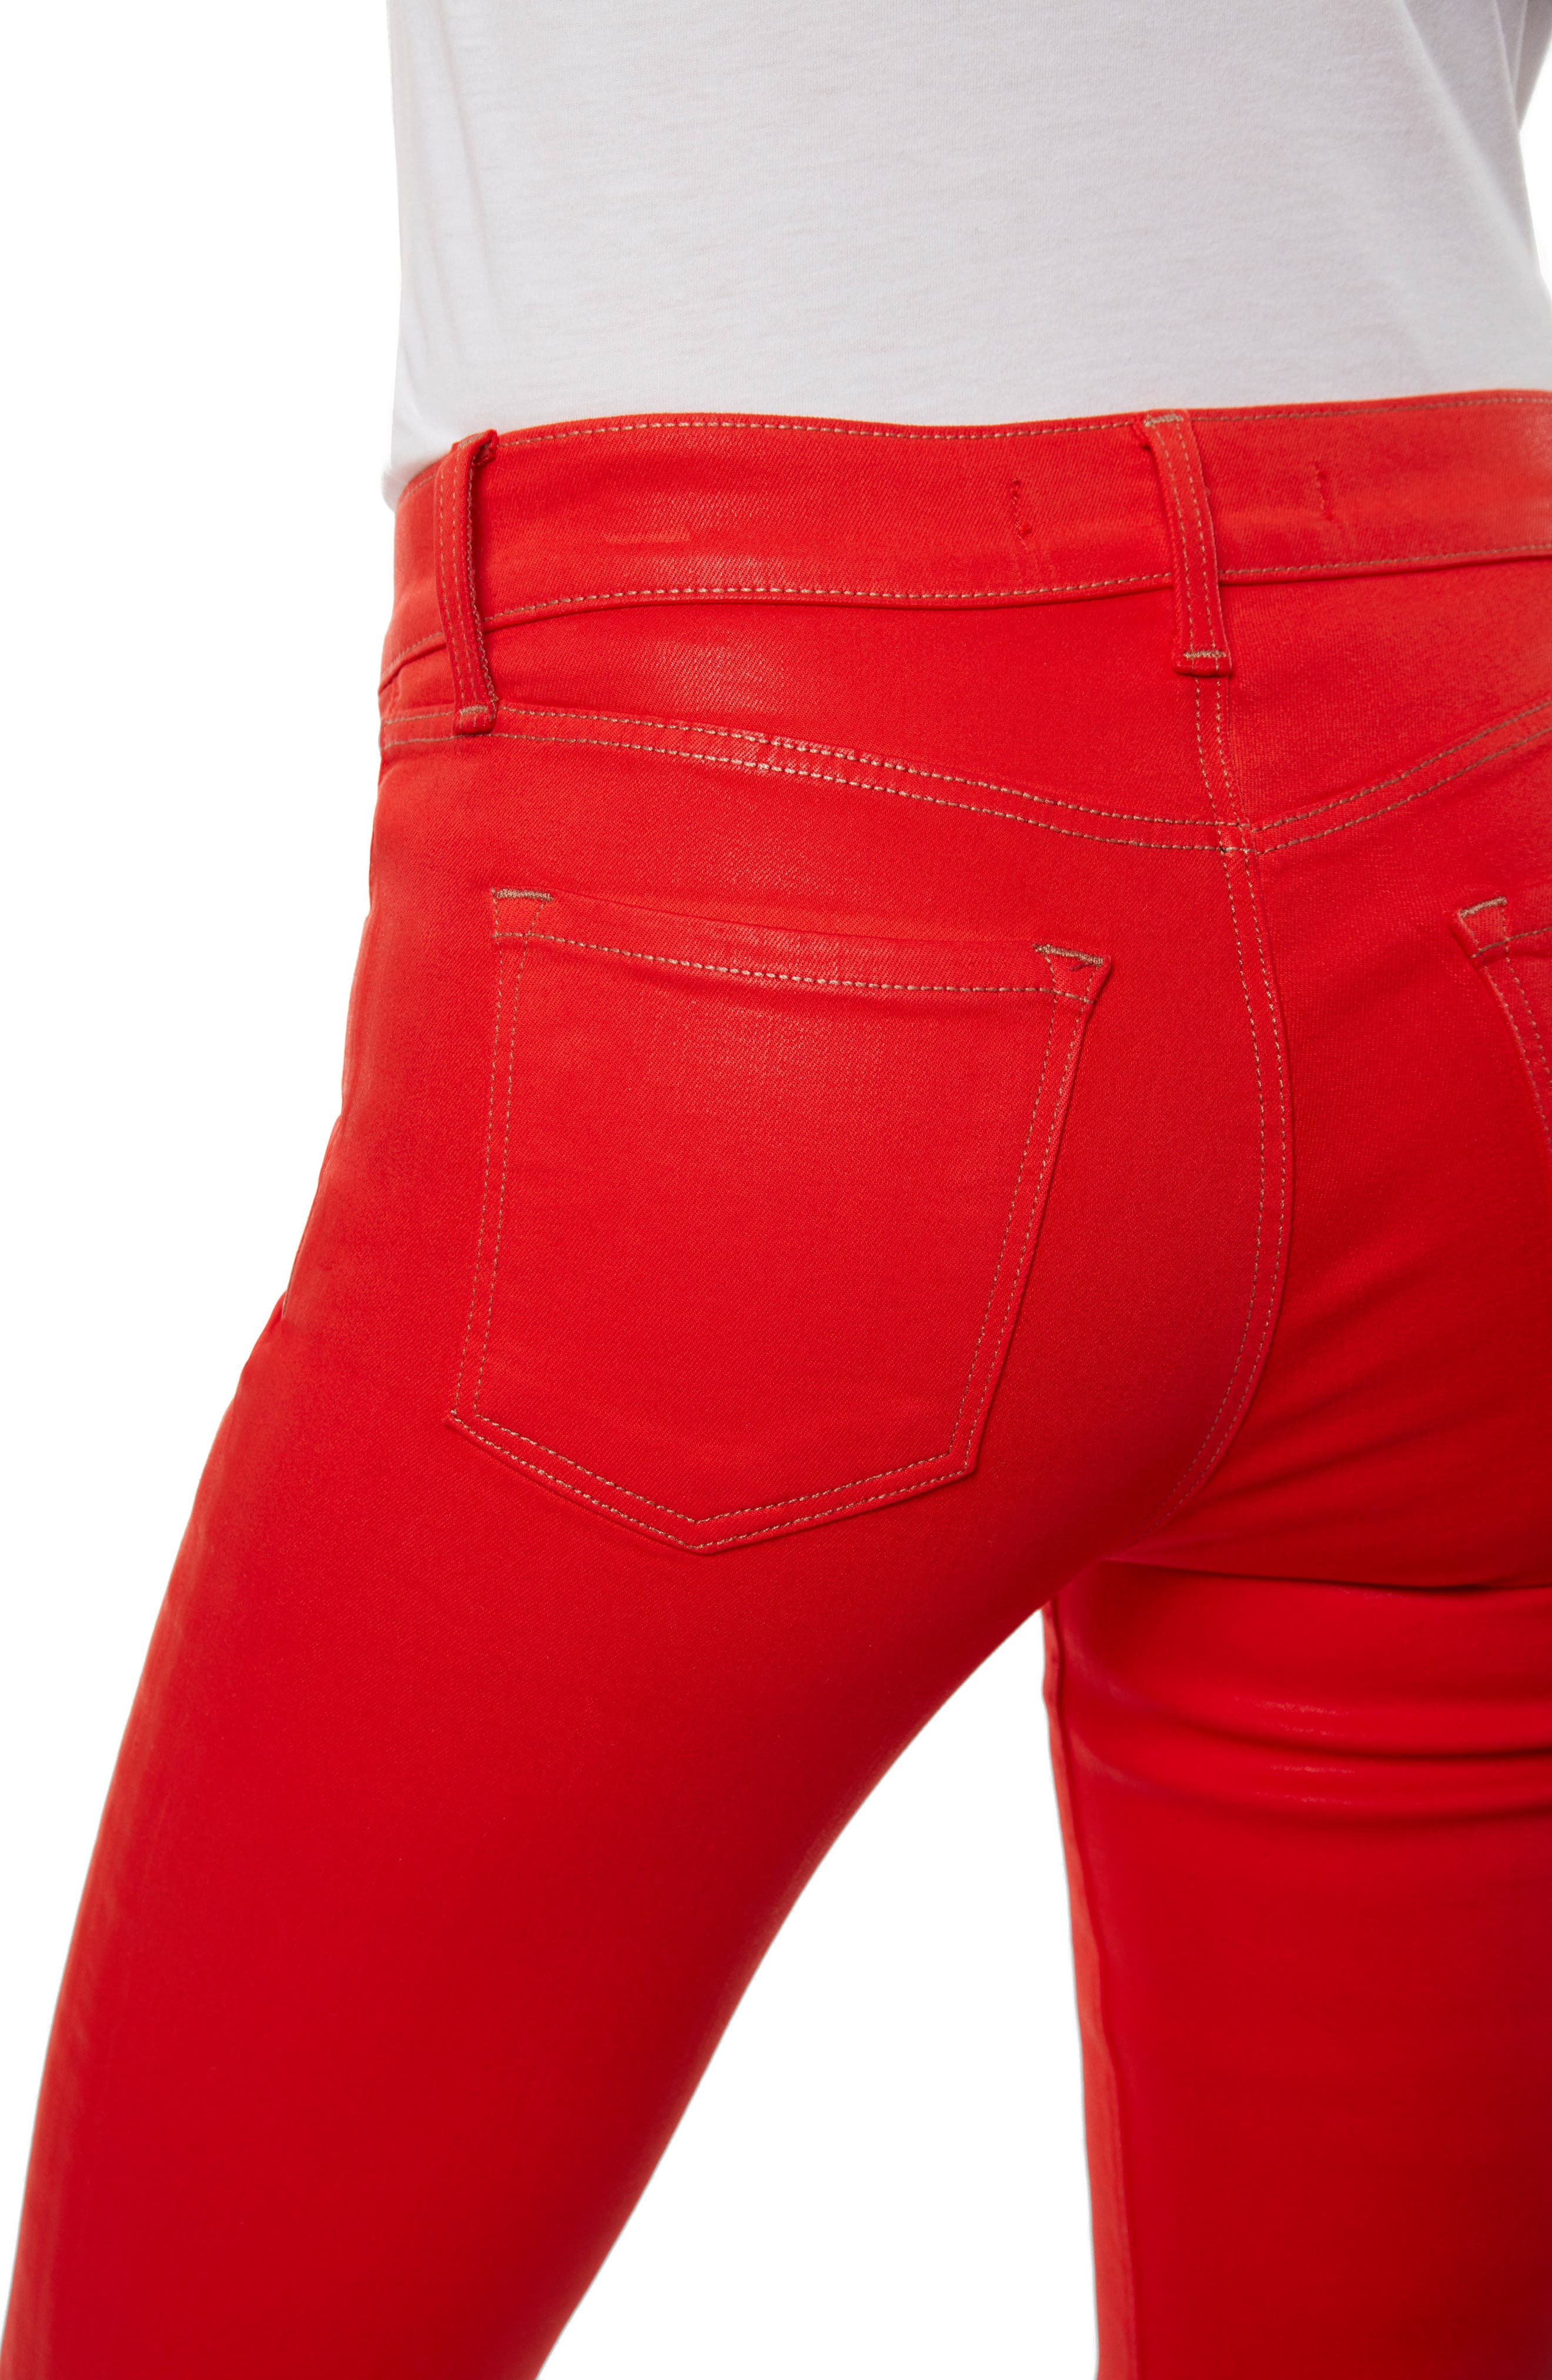 Super Skinny Jeans,                             Alternate thumbnail 4, color,                             Bright Coral Coated